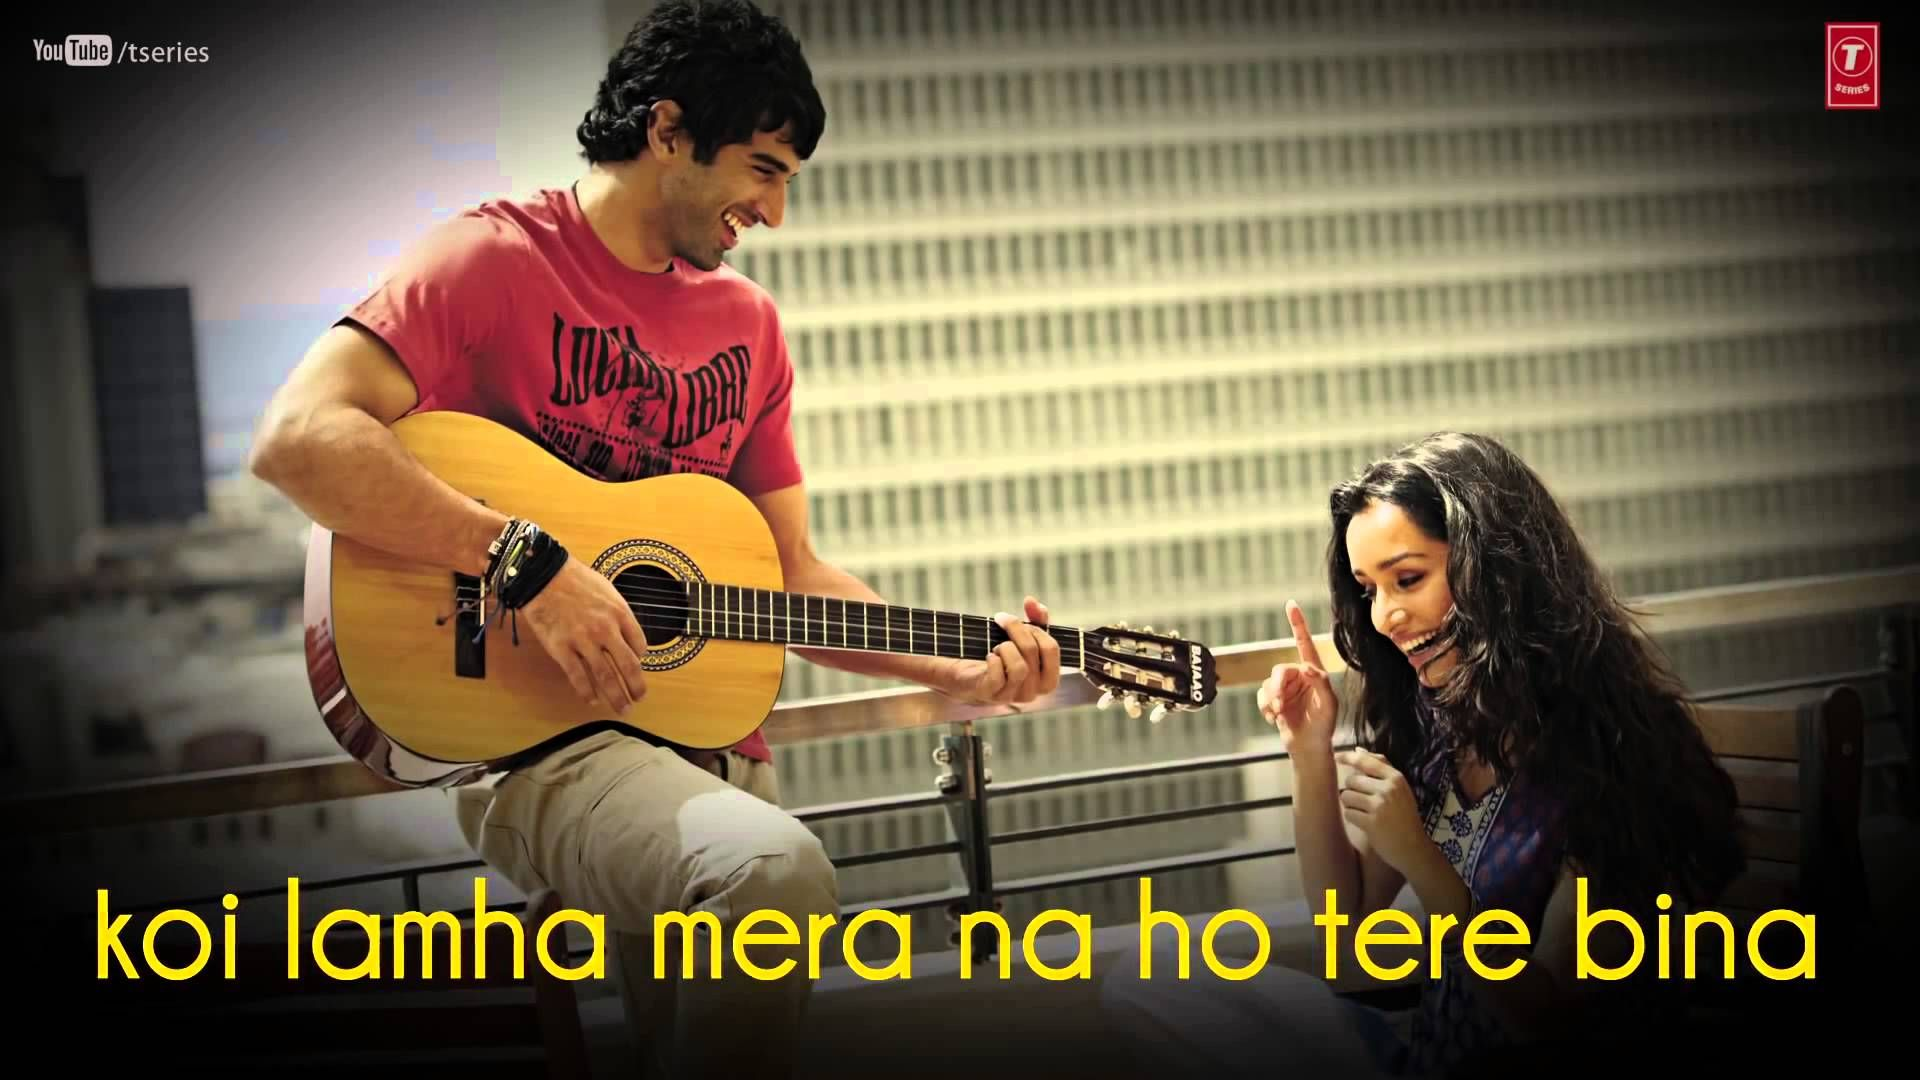 What kind of love do Hindi songs reflect?